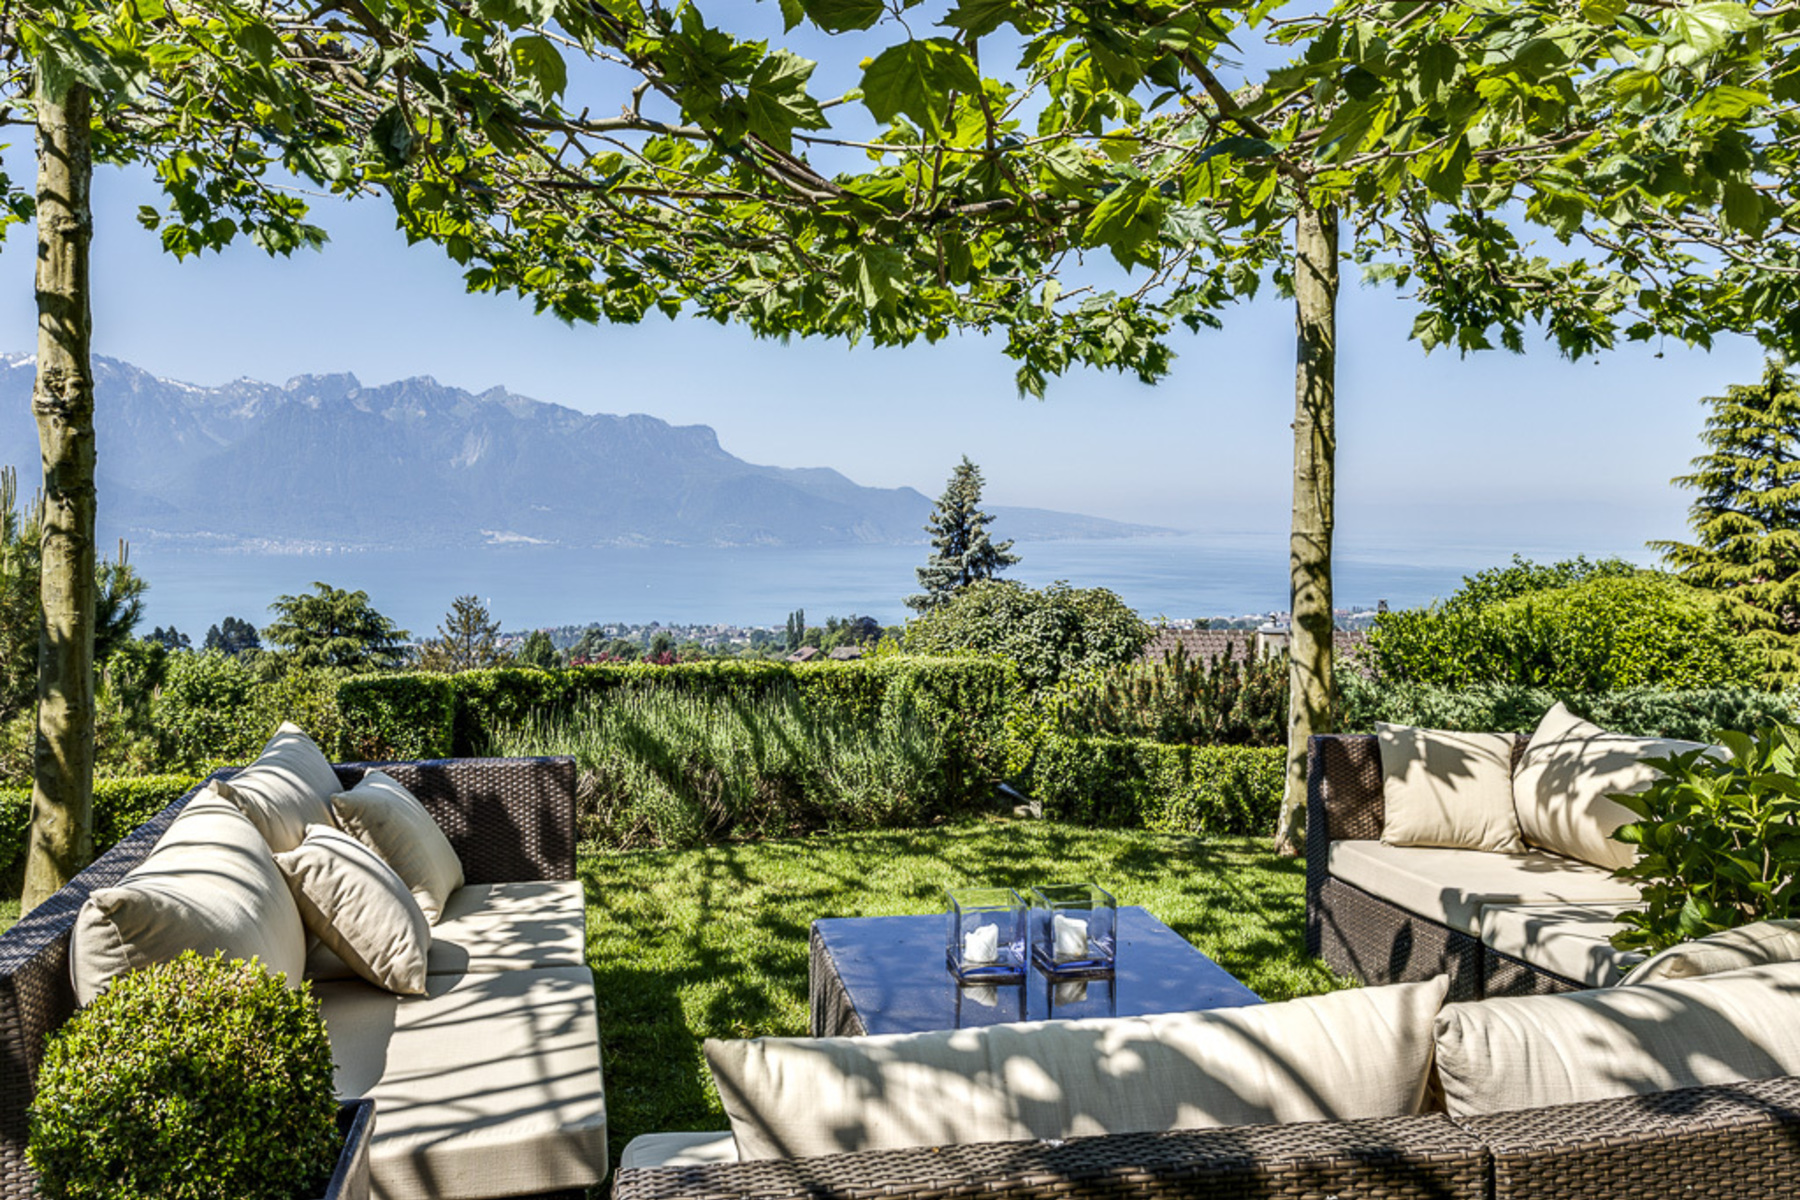 واحد منزل الأسرة للـ Sale في Exquisite 6.5 room family home Superb views over the lake Blonay Blonay, Vaud, 1807 Switzerland